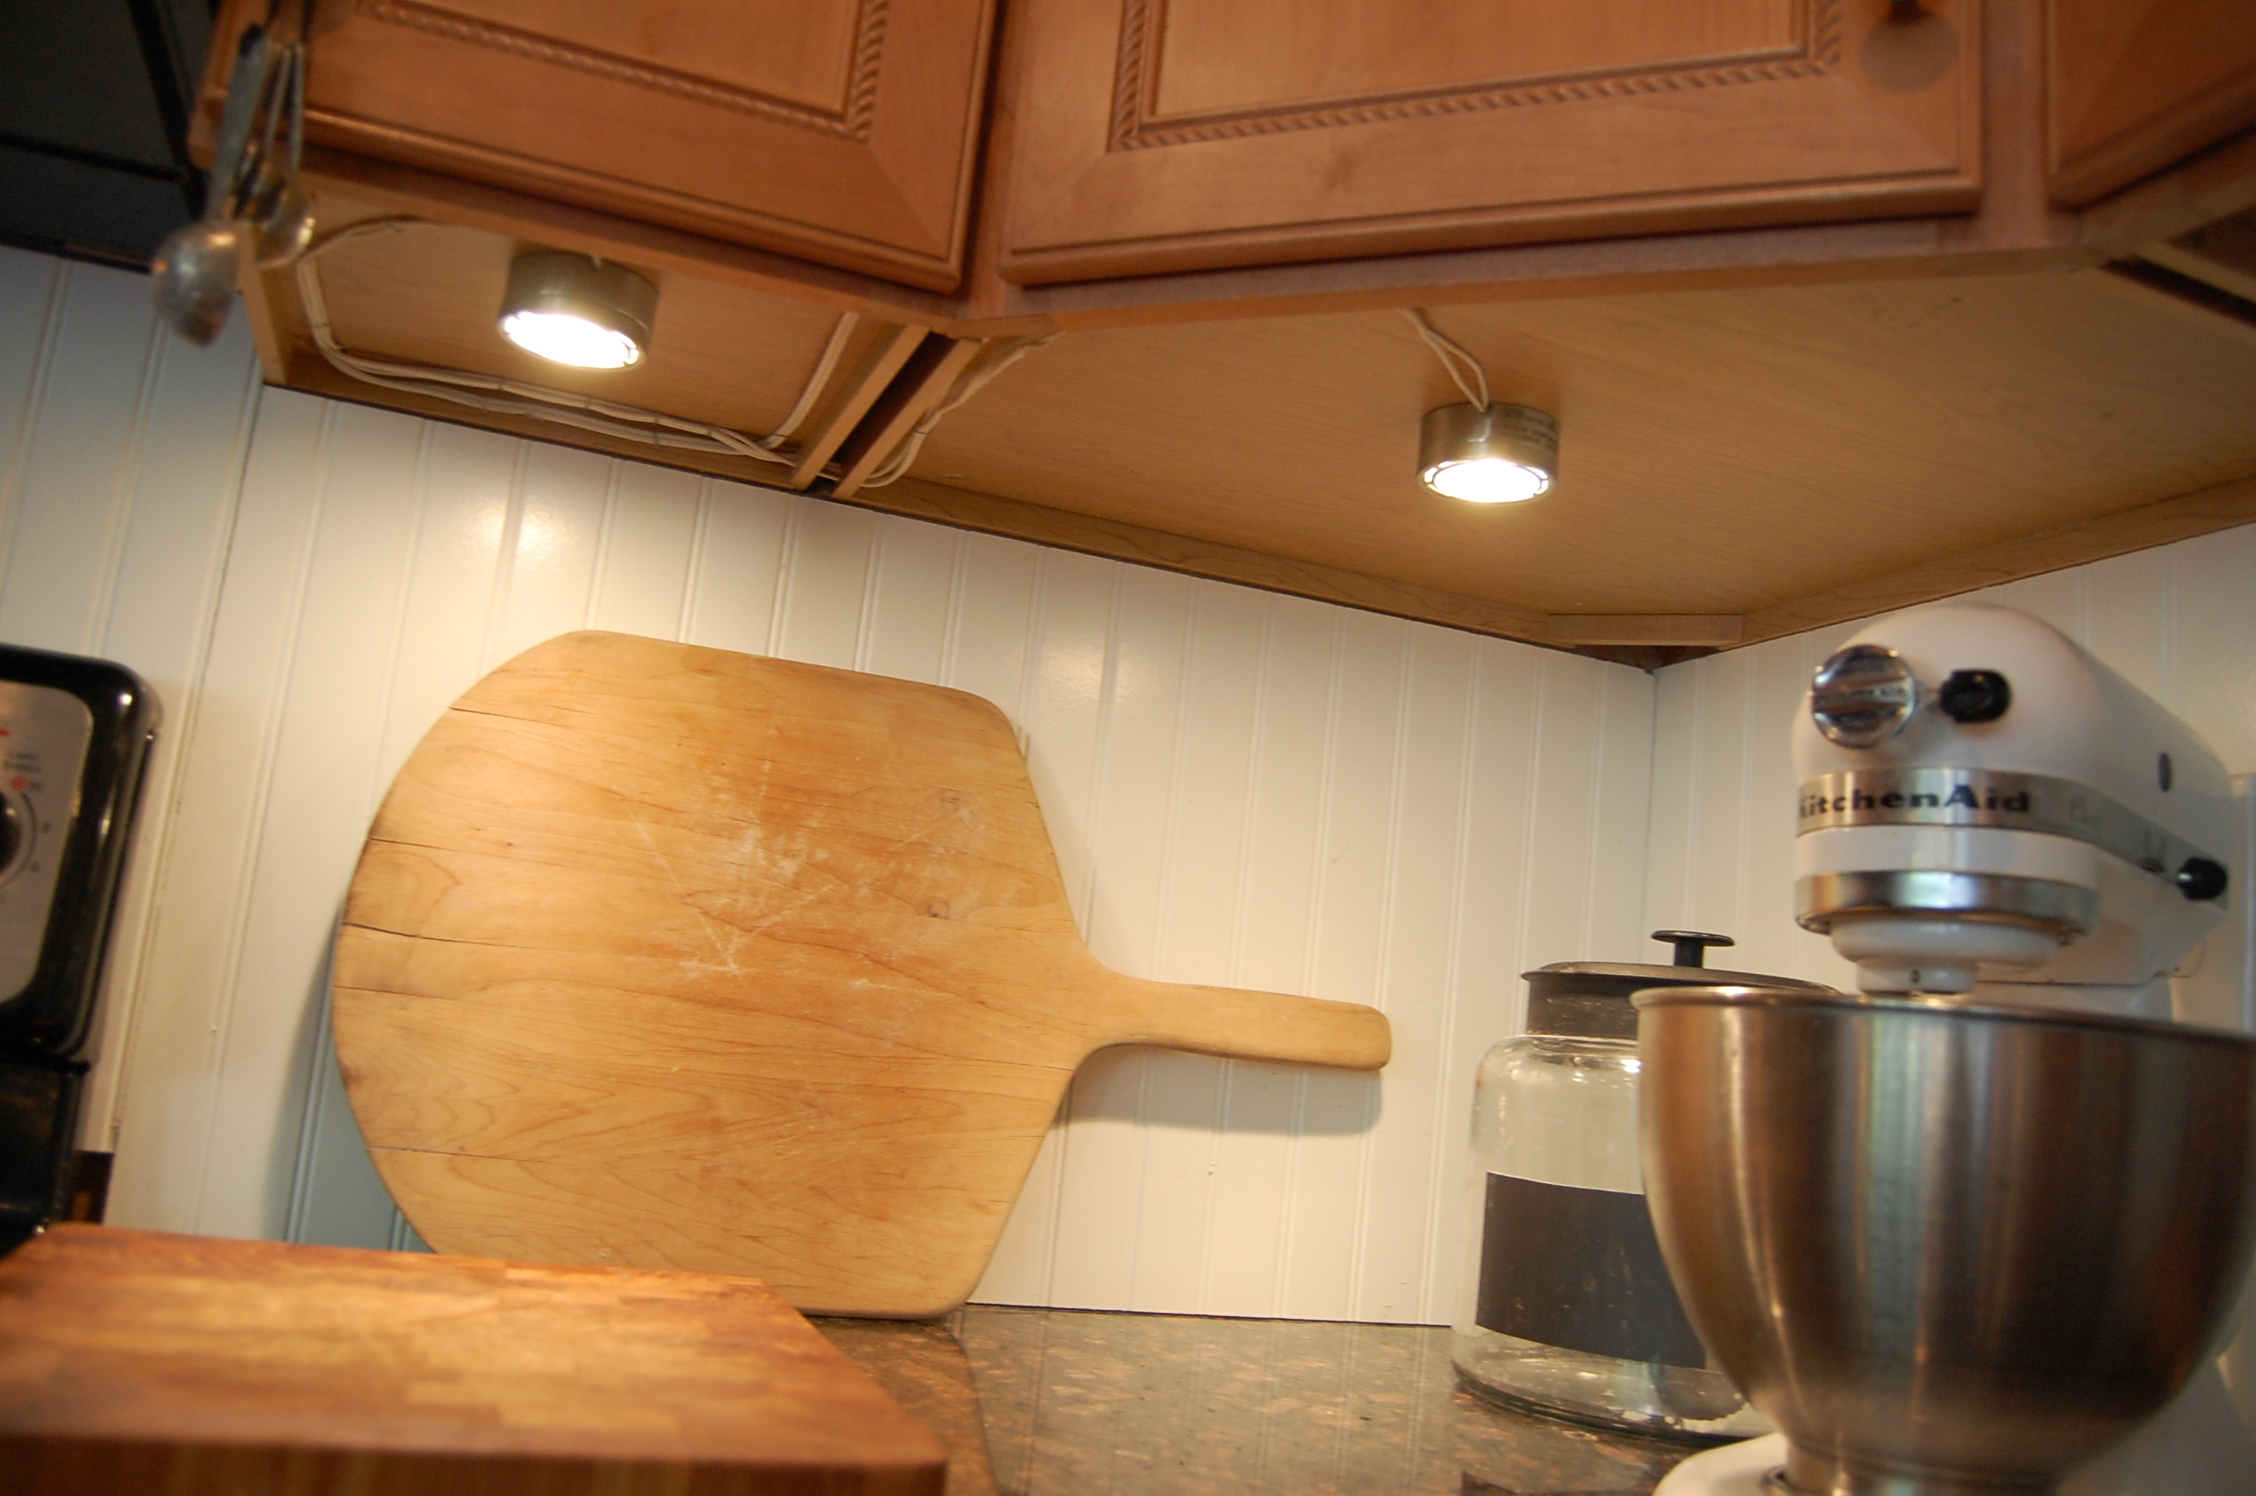 kitchen lighting under cabinet led. Under Shelf Lighting. Lighting Kitchen Cabinet Led T